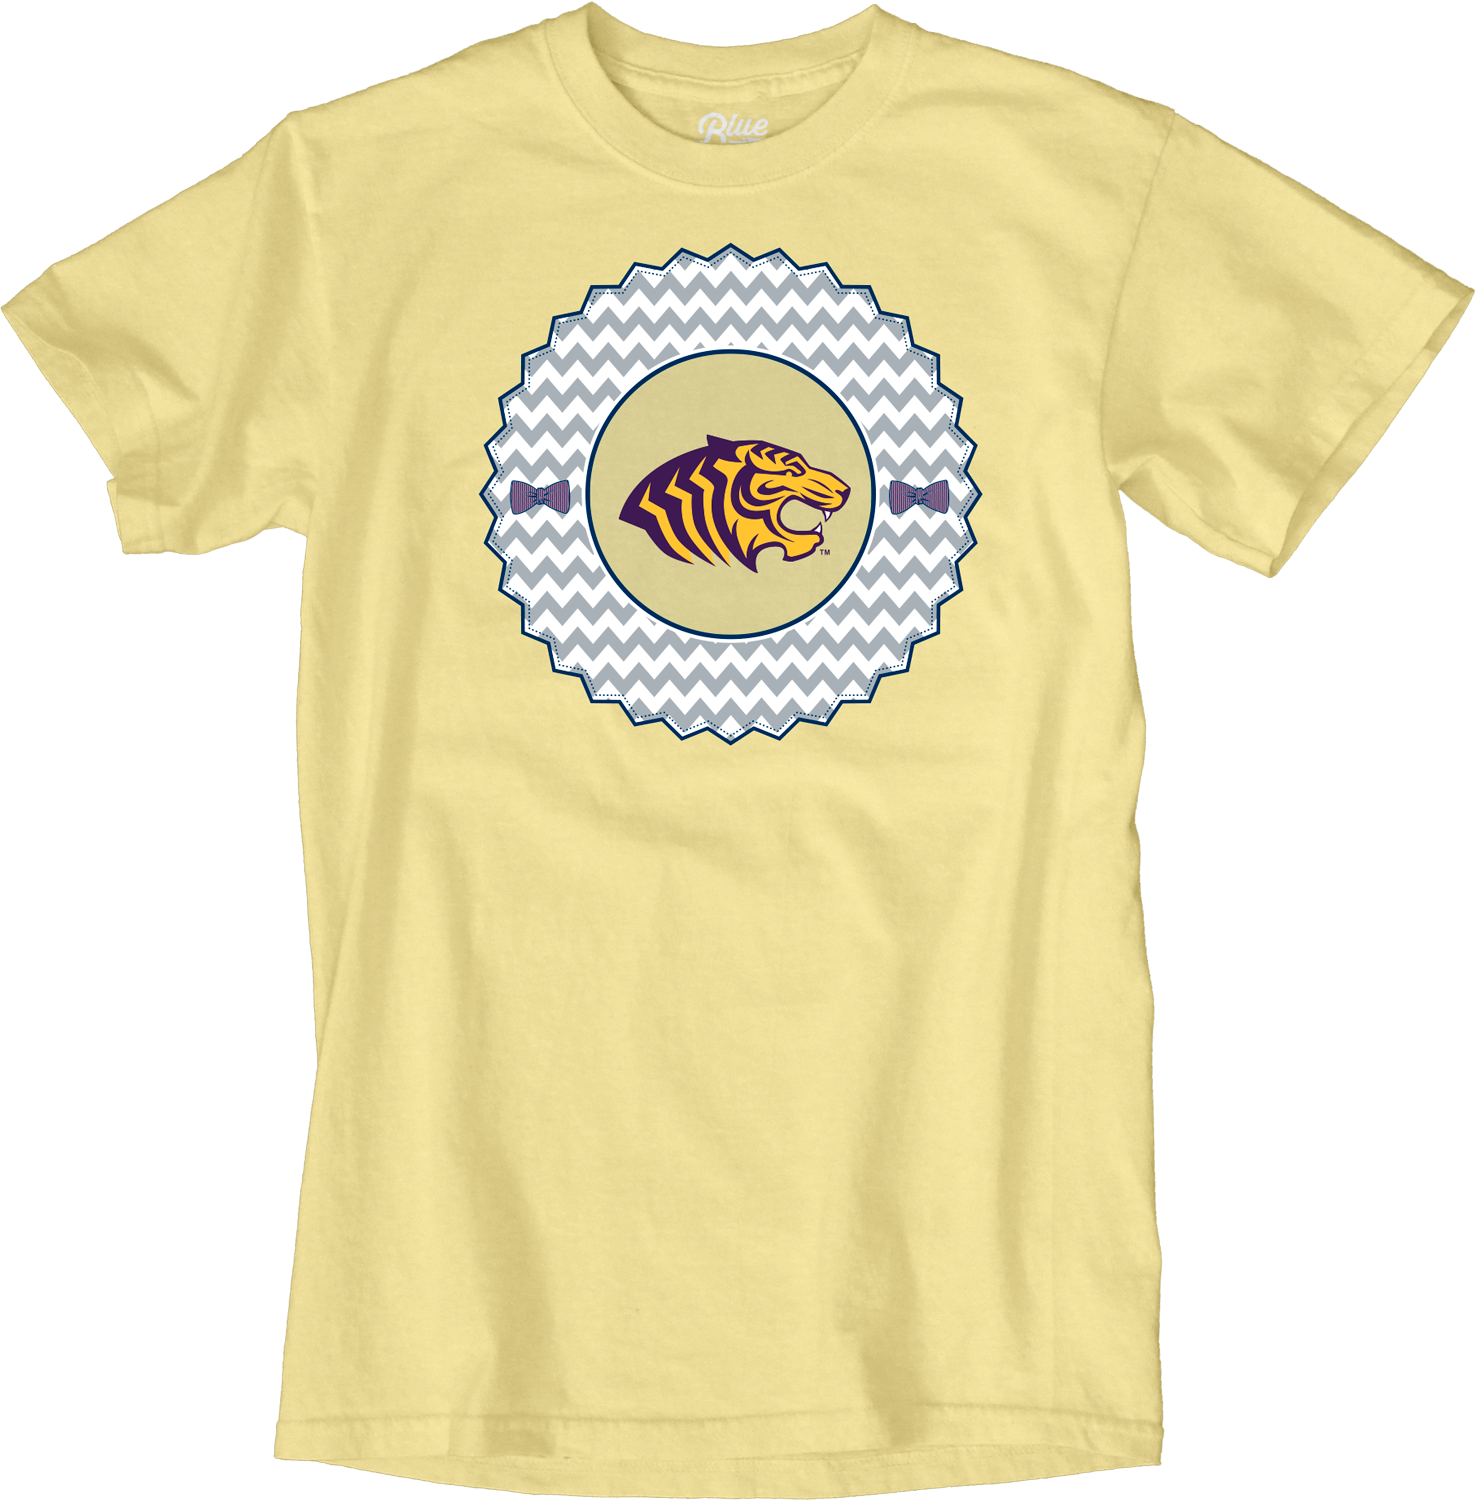 SOUTHERN BELLE TIGER LOGO TEE